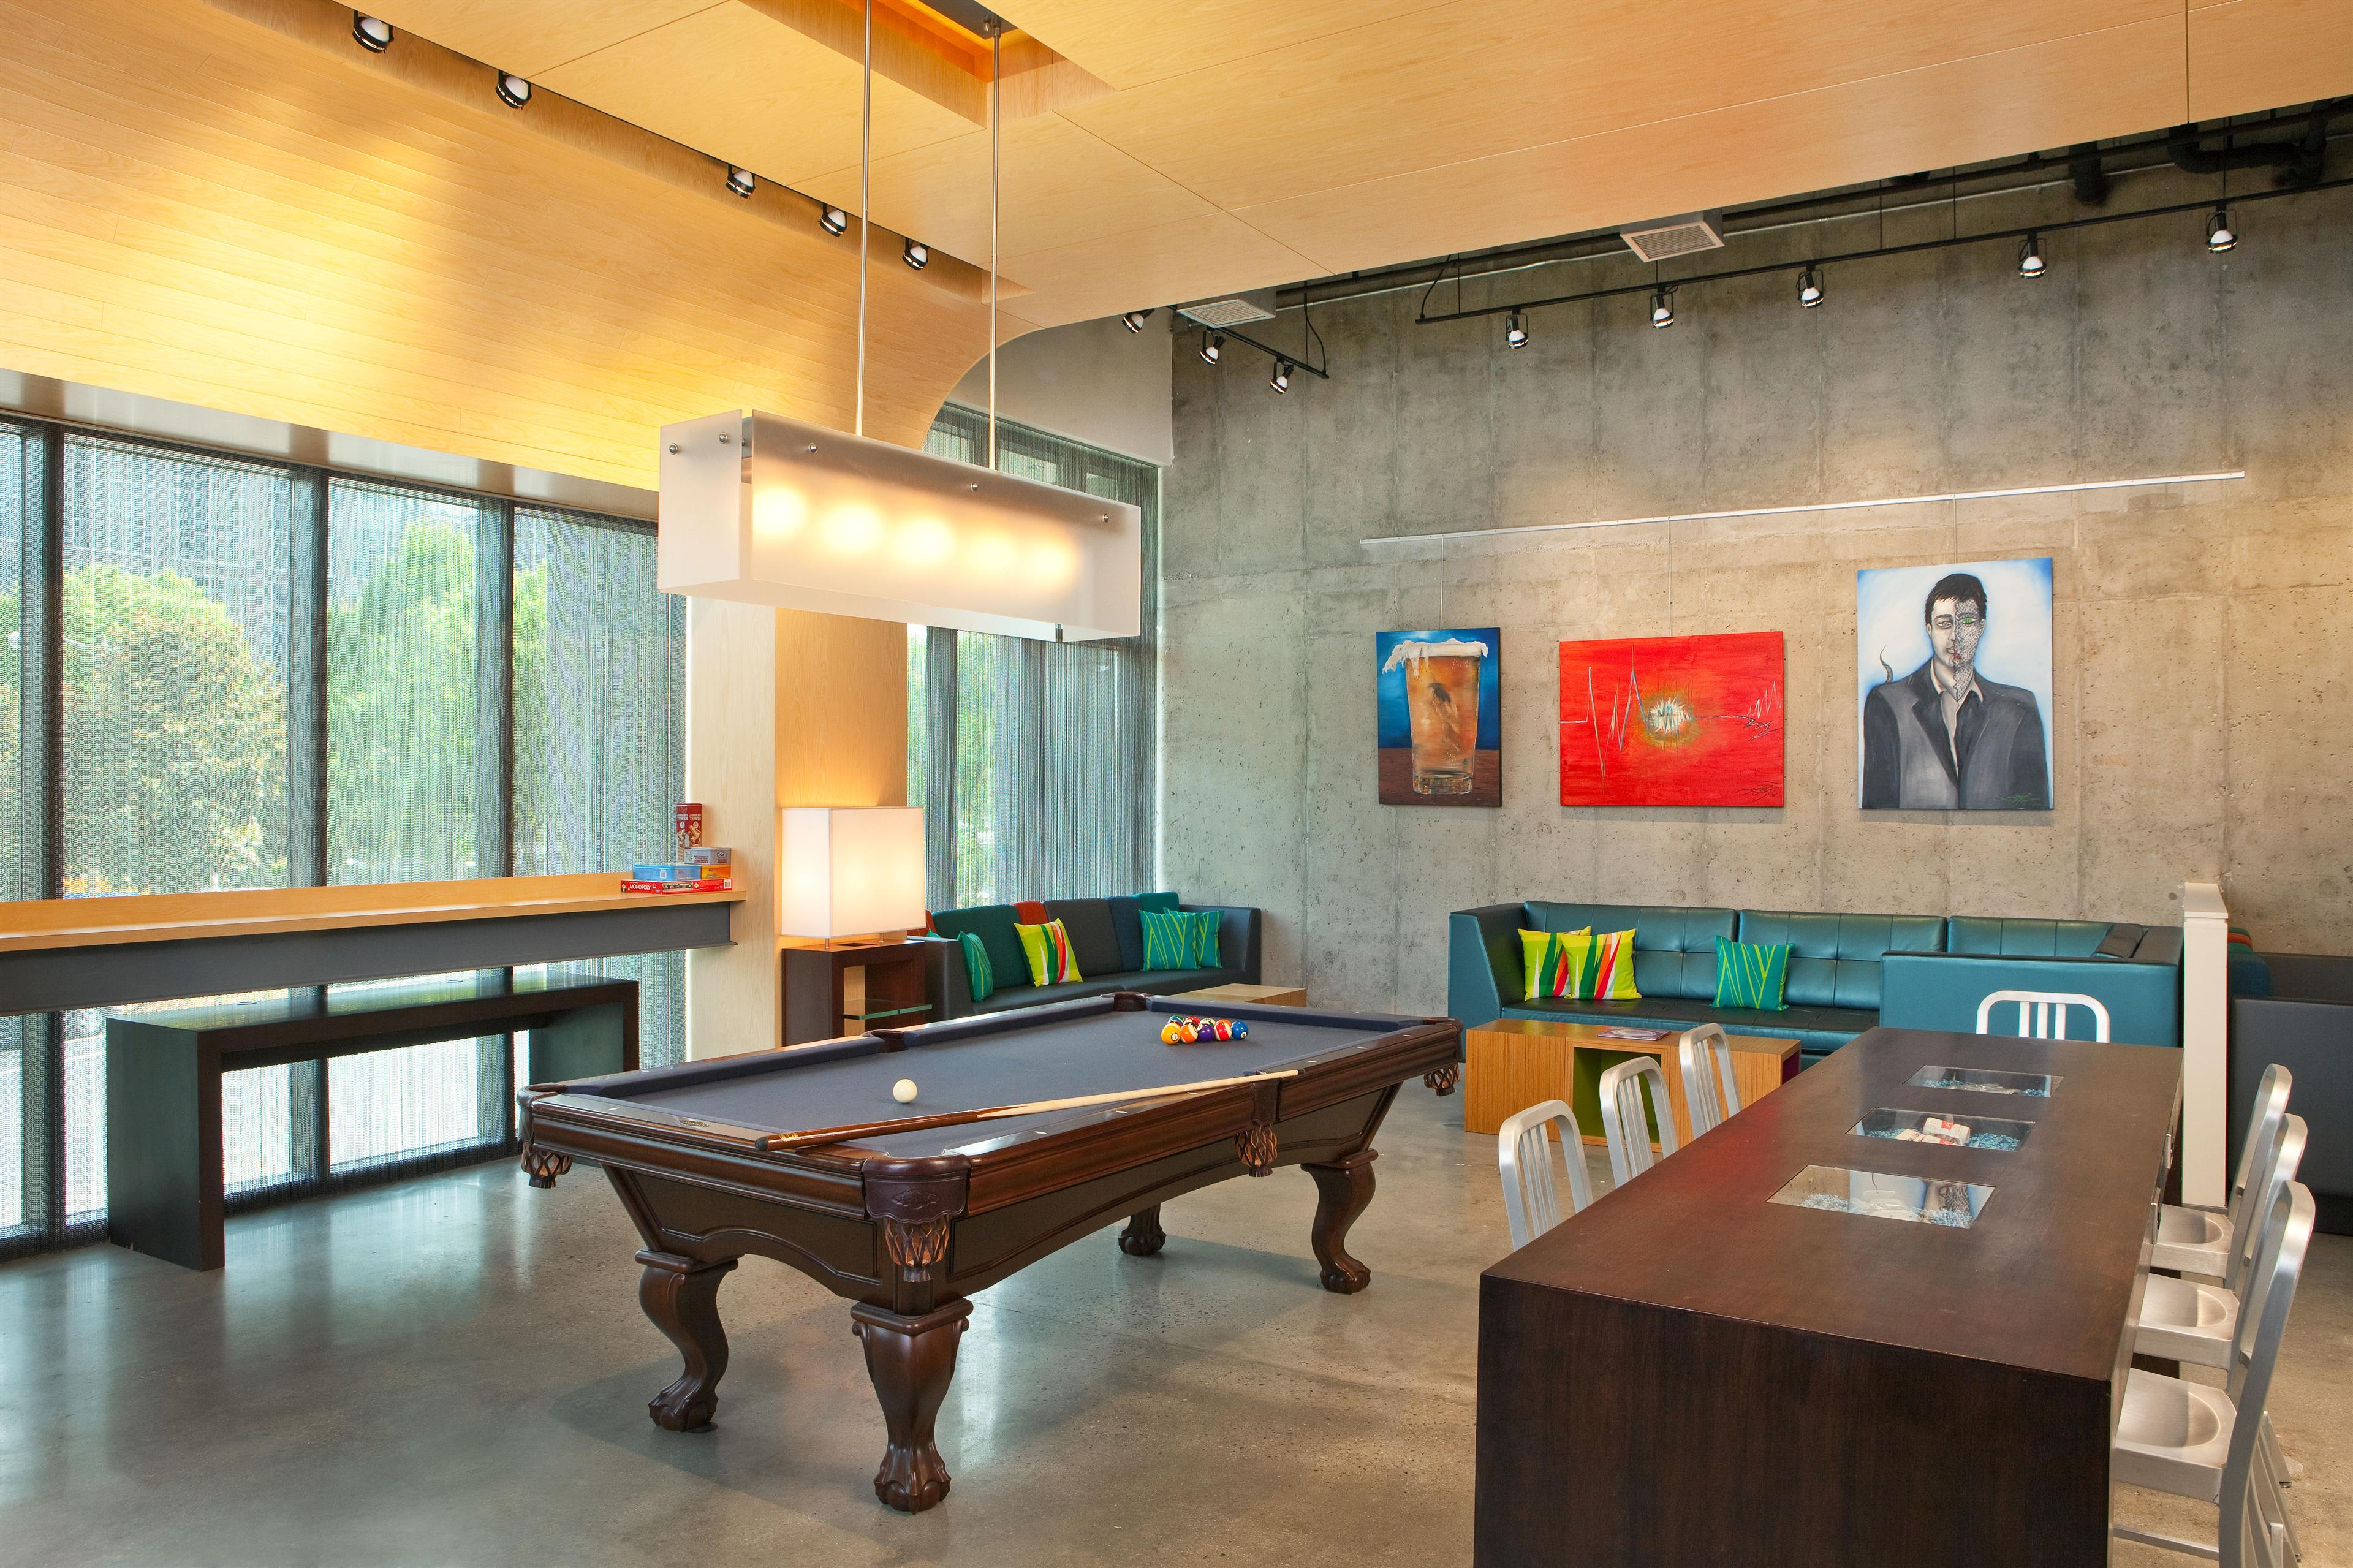 Pool Table in re:mix by Aloft Lounge